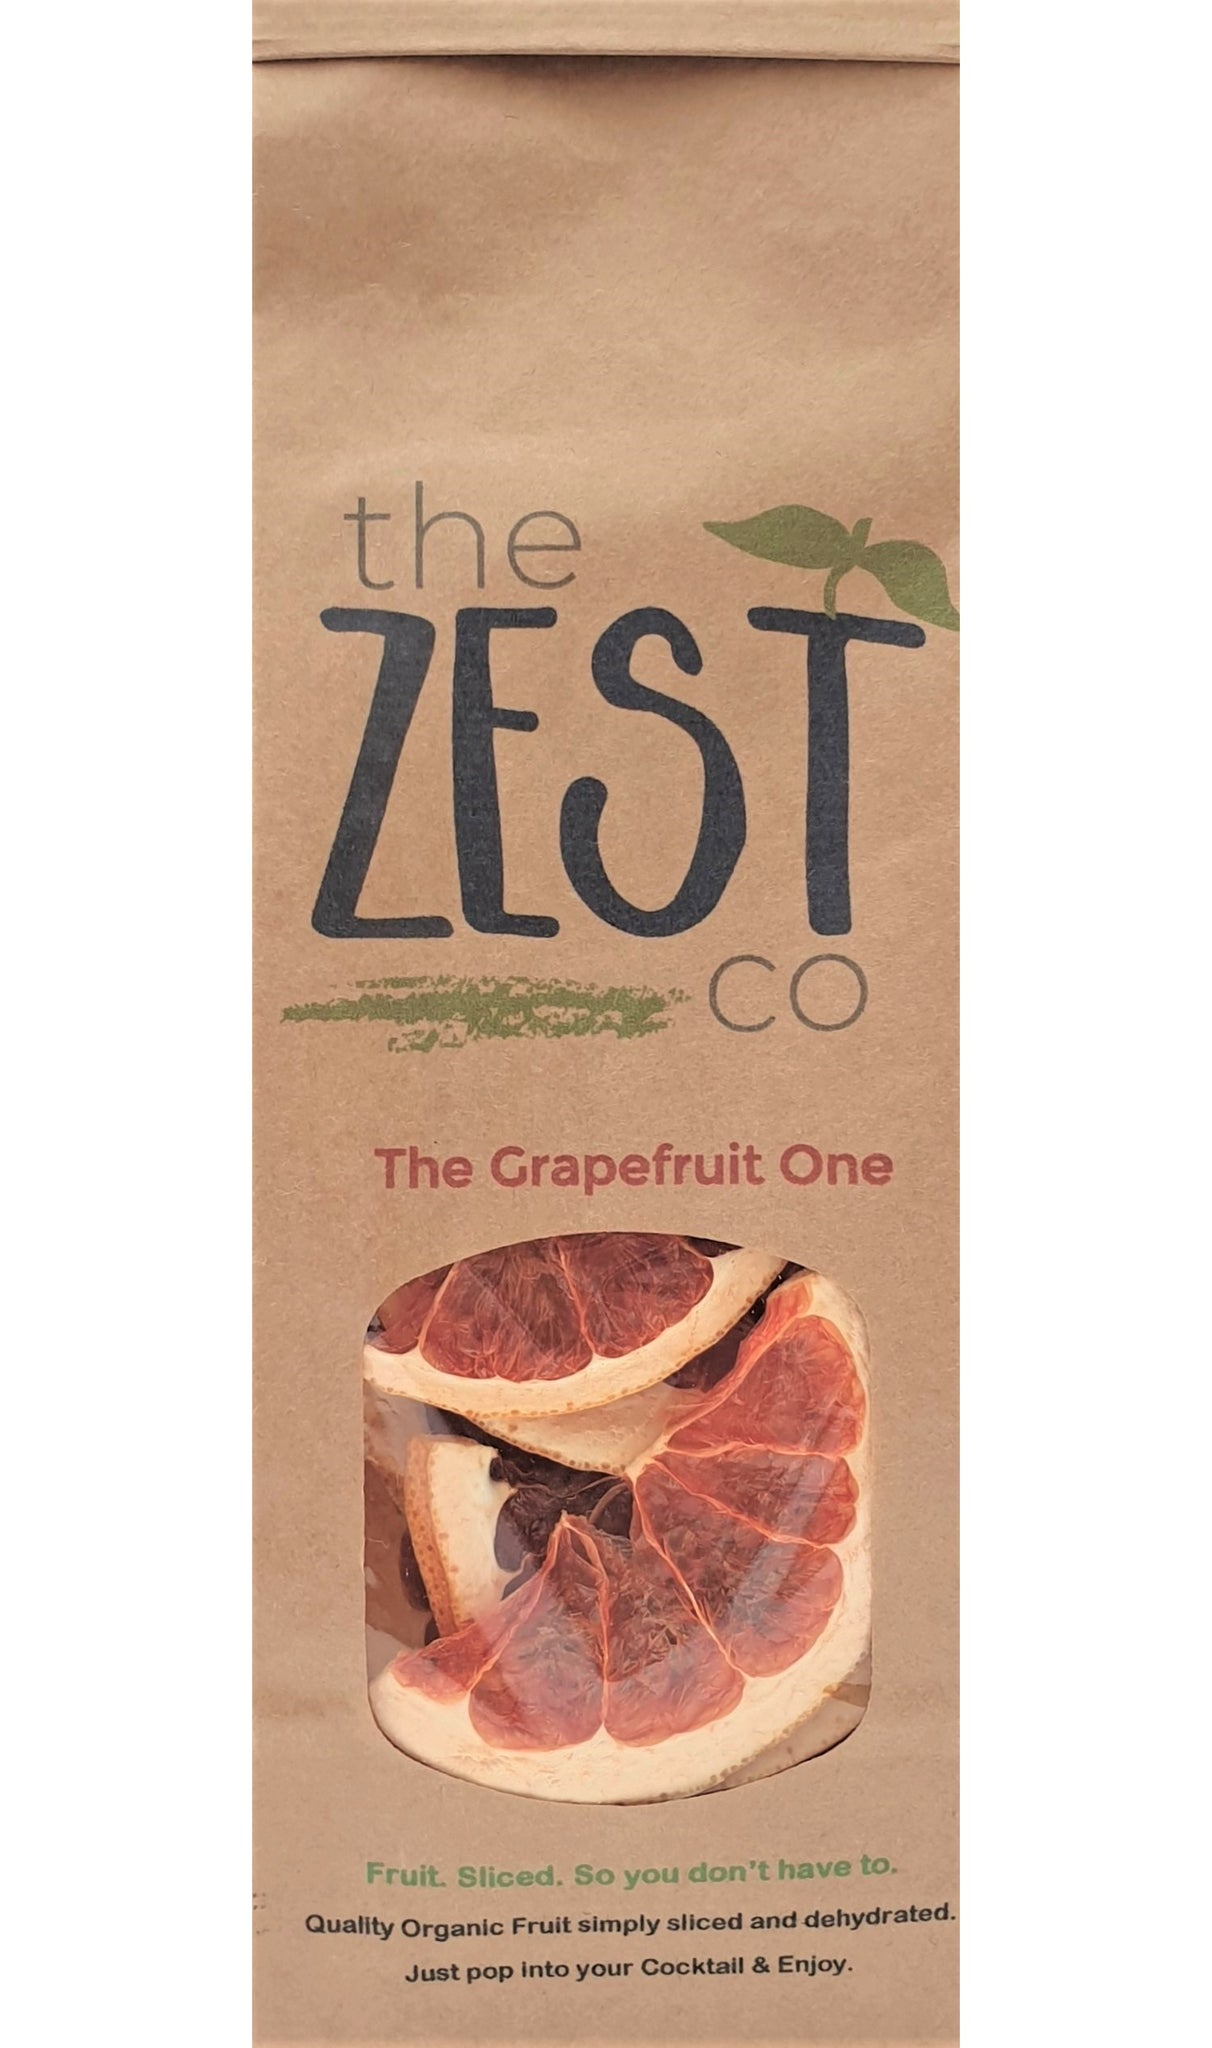 The Zest Co. The Grapefruit One